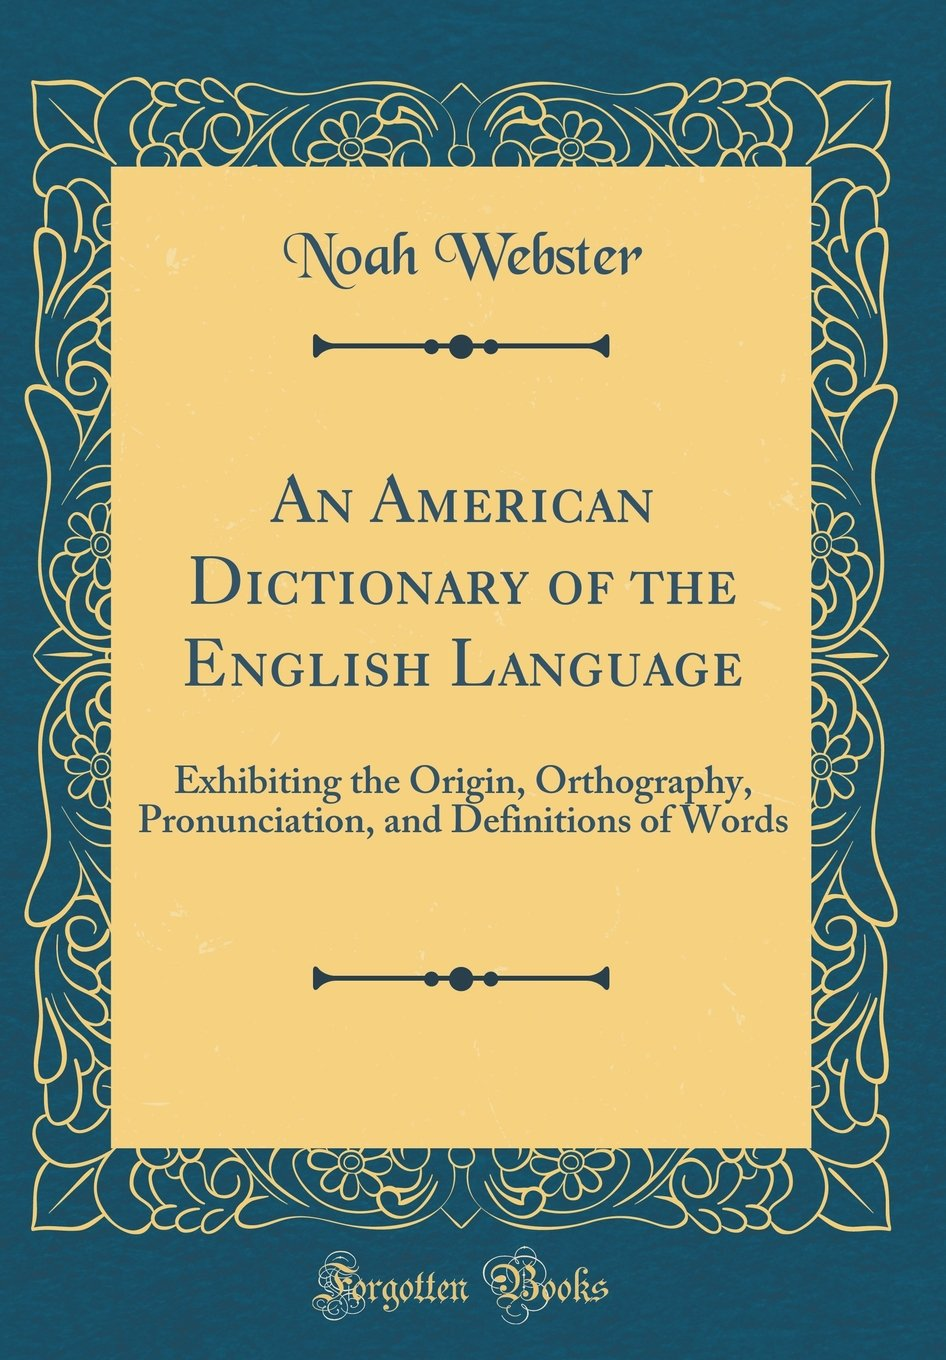 An American Dictionary of the English Language: Exhibiting the Origin, Orthography, Pronunciation, and Definitions of Words (Classic Reprint) ebook